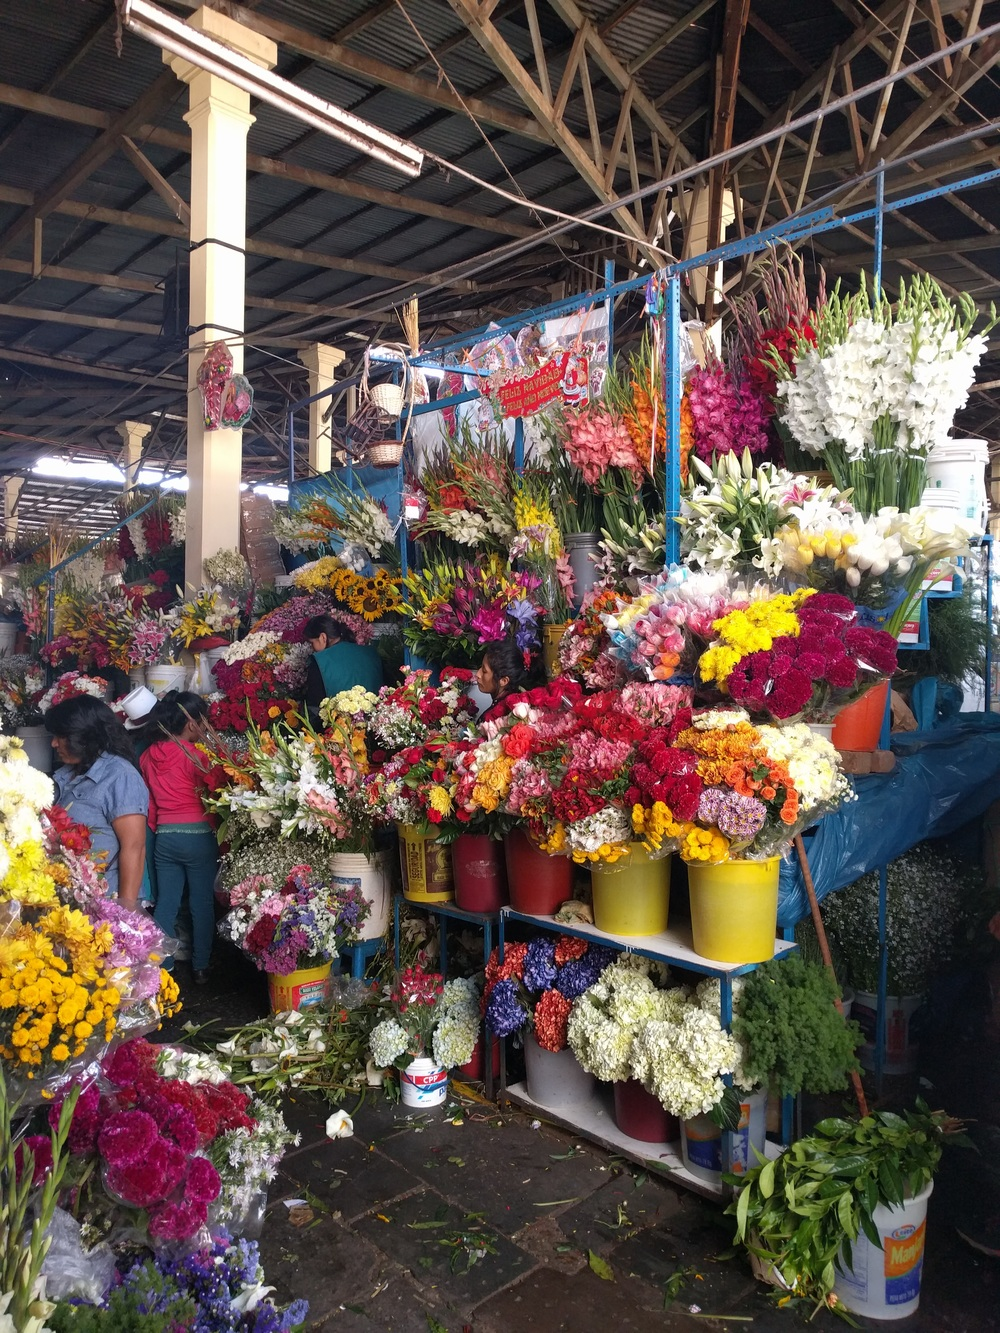 The flower market in Cusco.